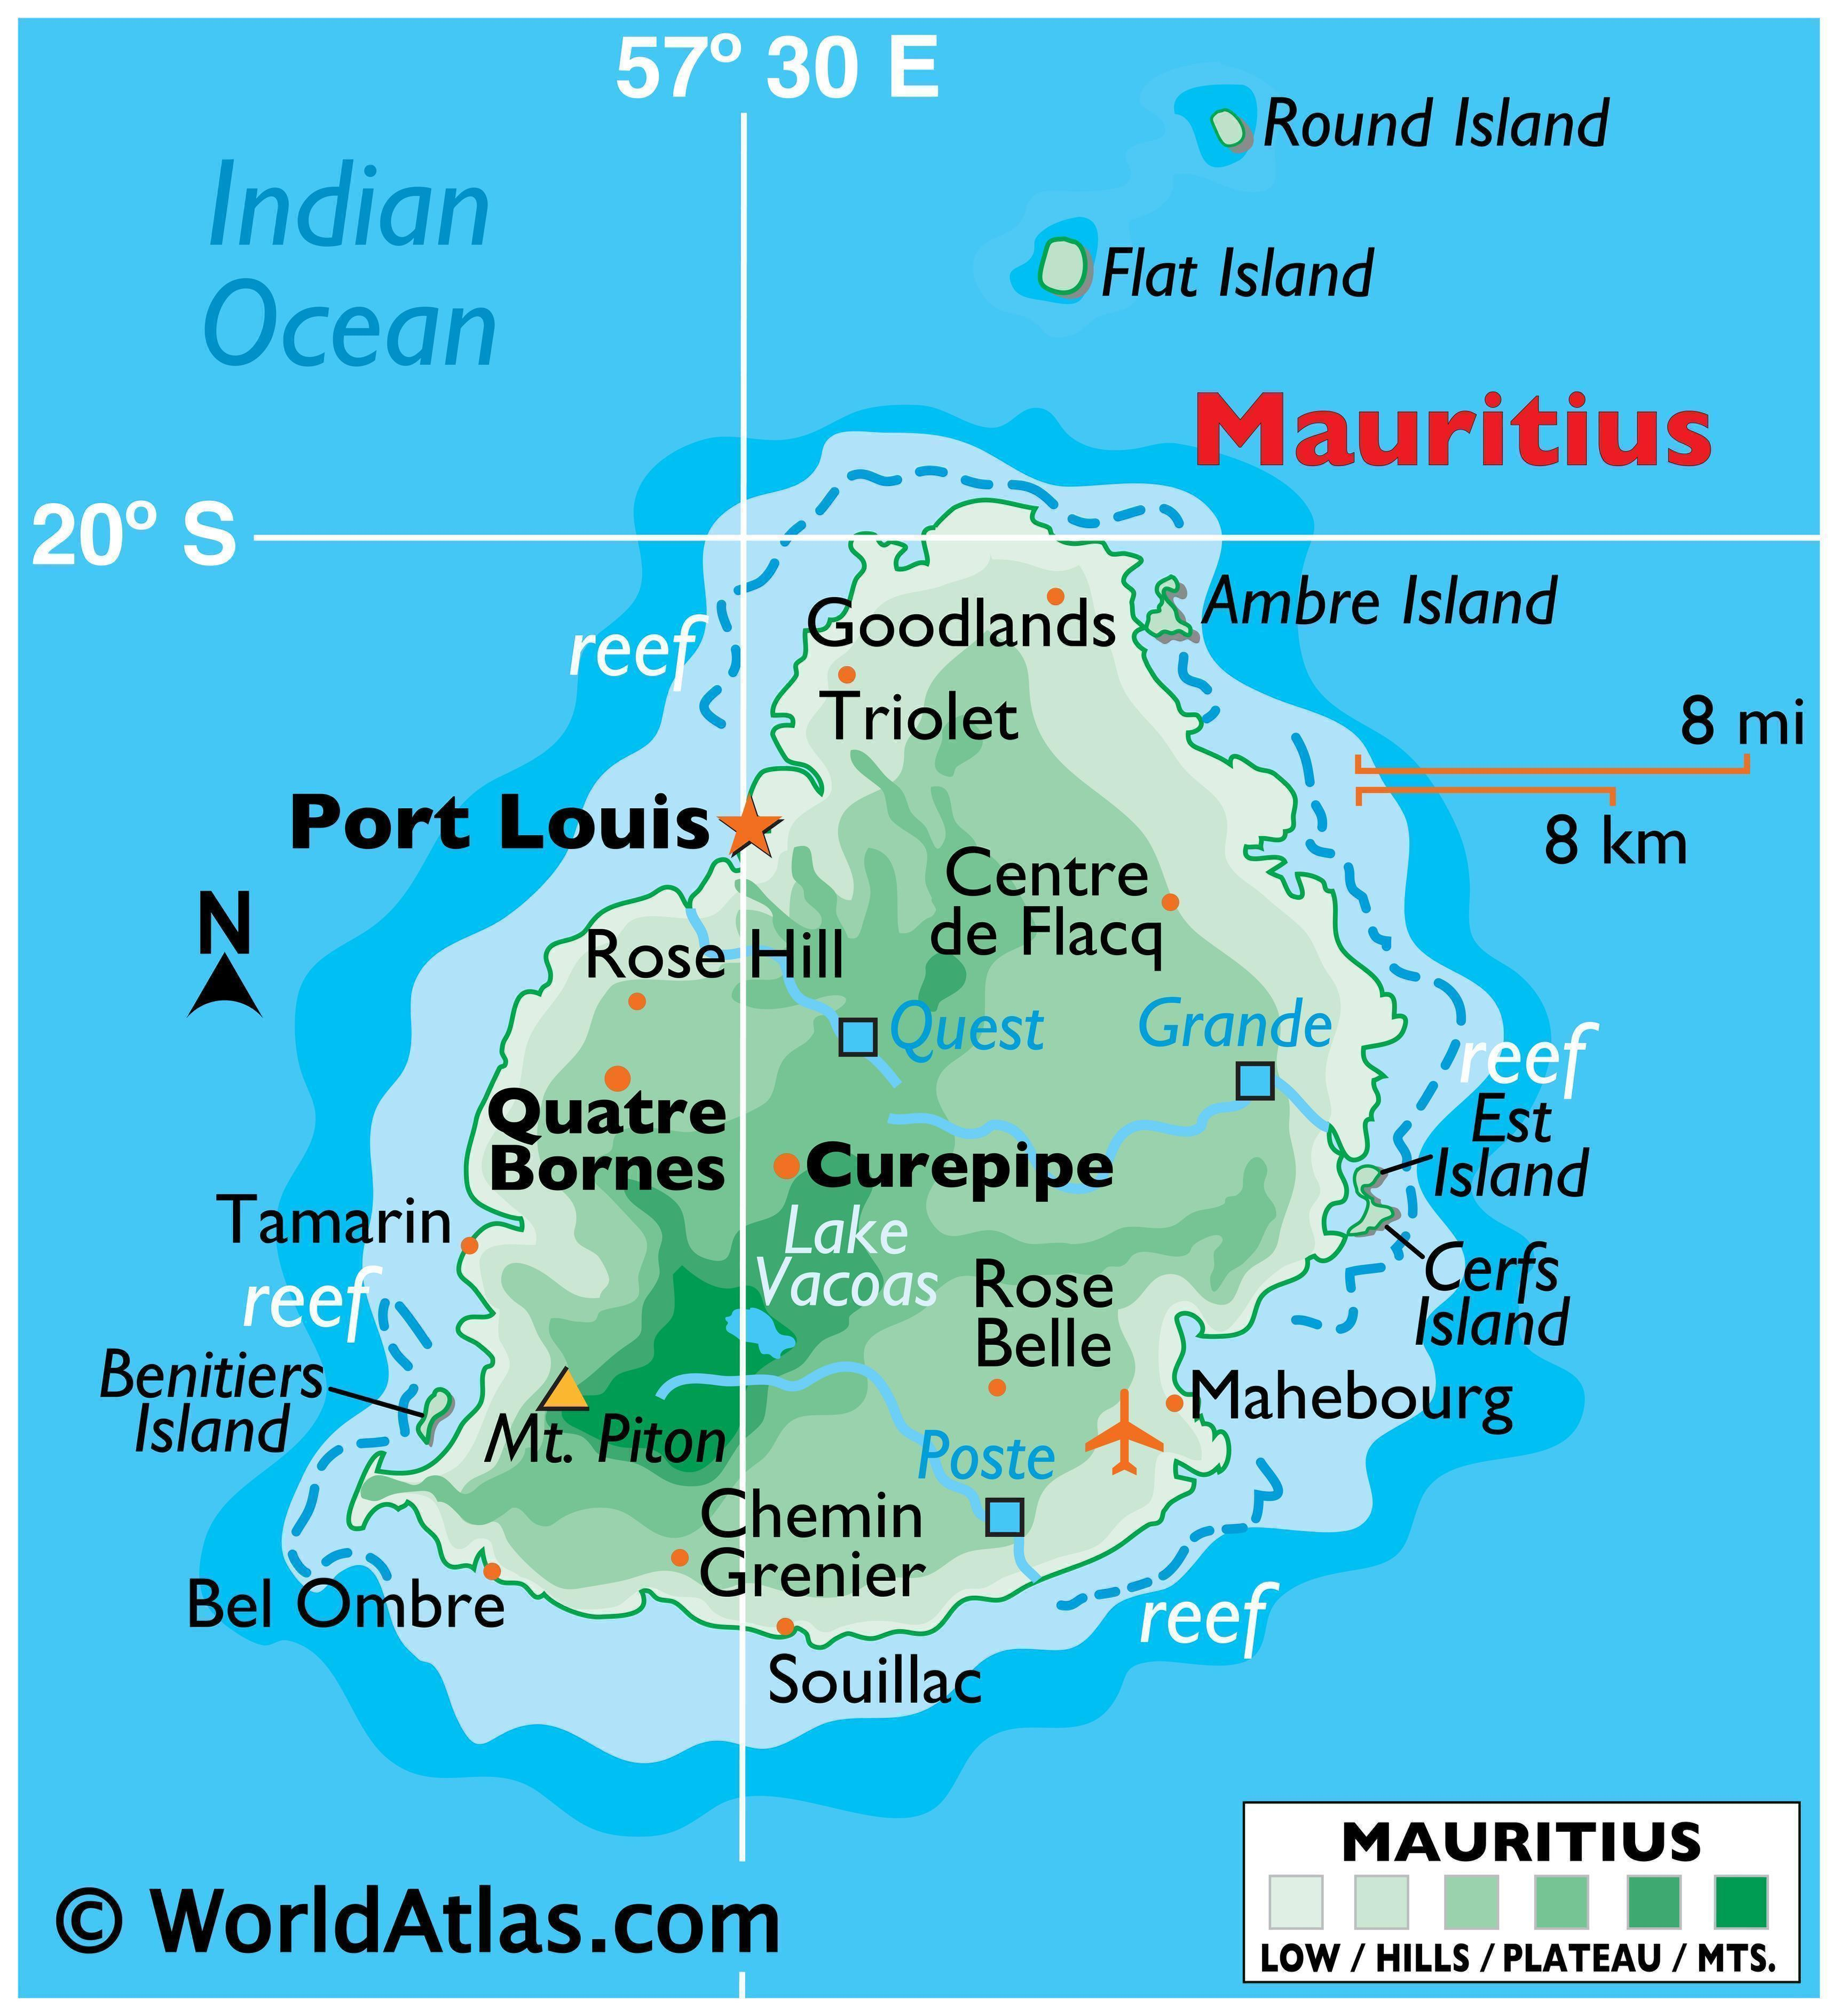 Physical Map of Mauritius showing relief, outlying islands, tallest peak, lakes, major river, and important cities.